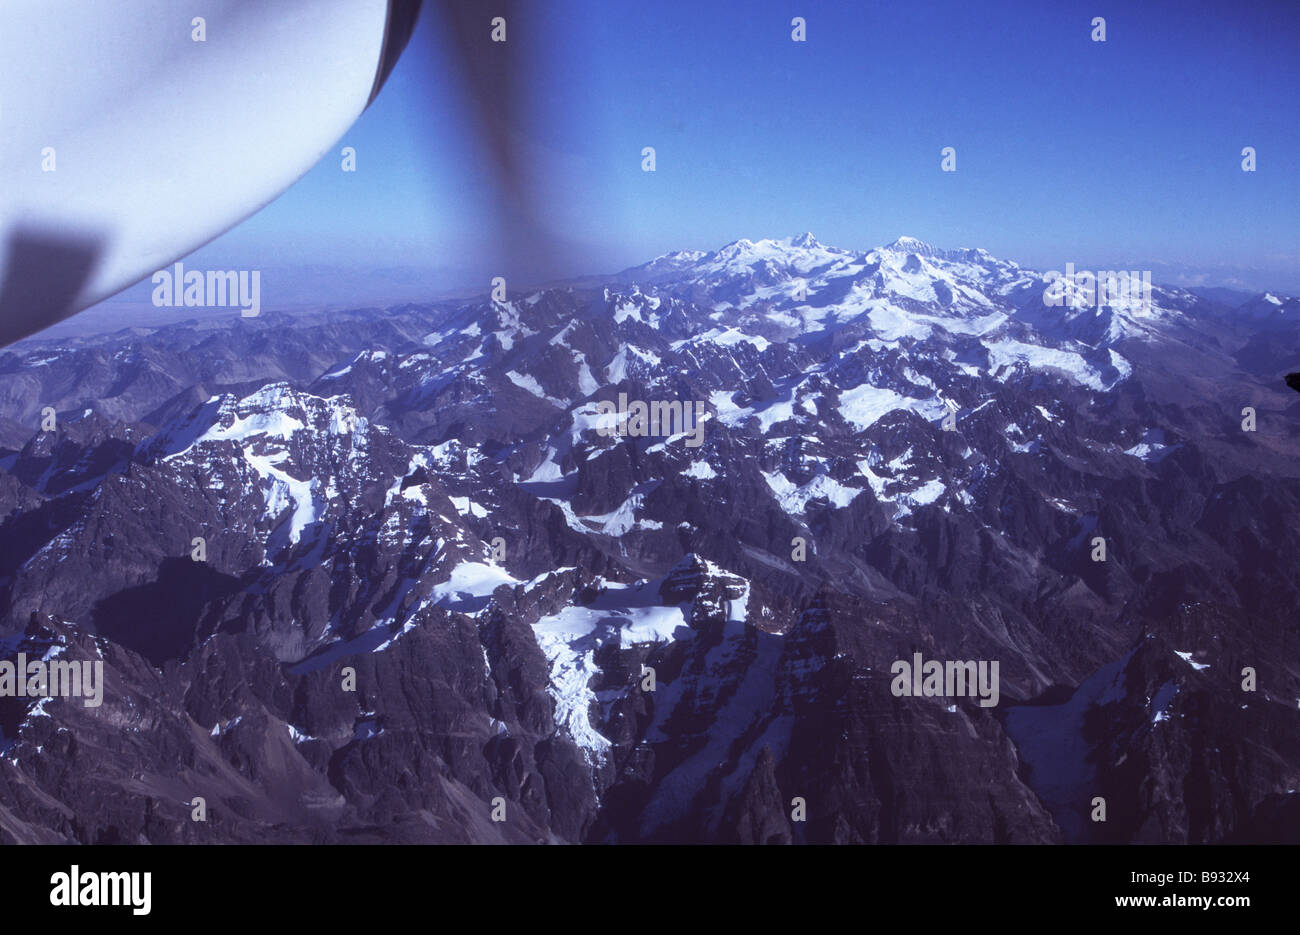 Aerial view of northern part of Cordillera Real from aeroplane, Bolivia - Stock Image